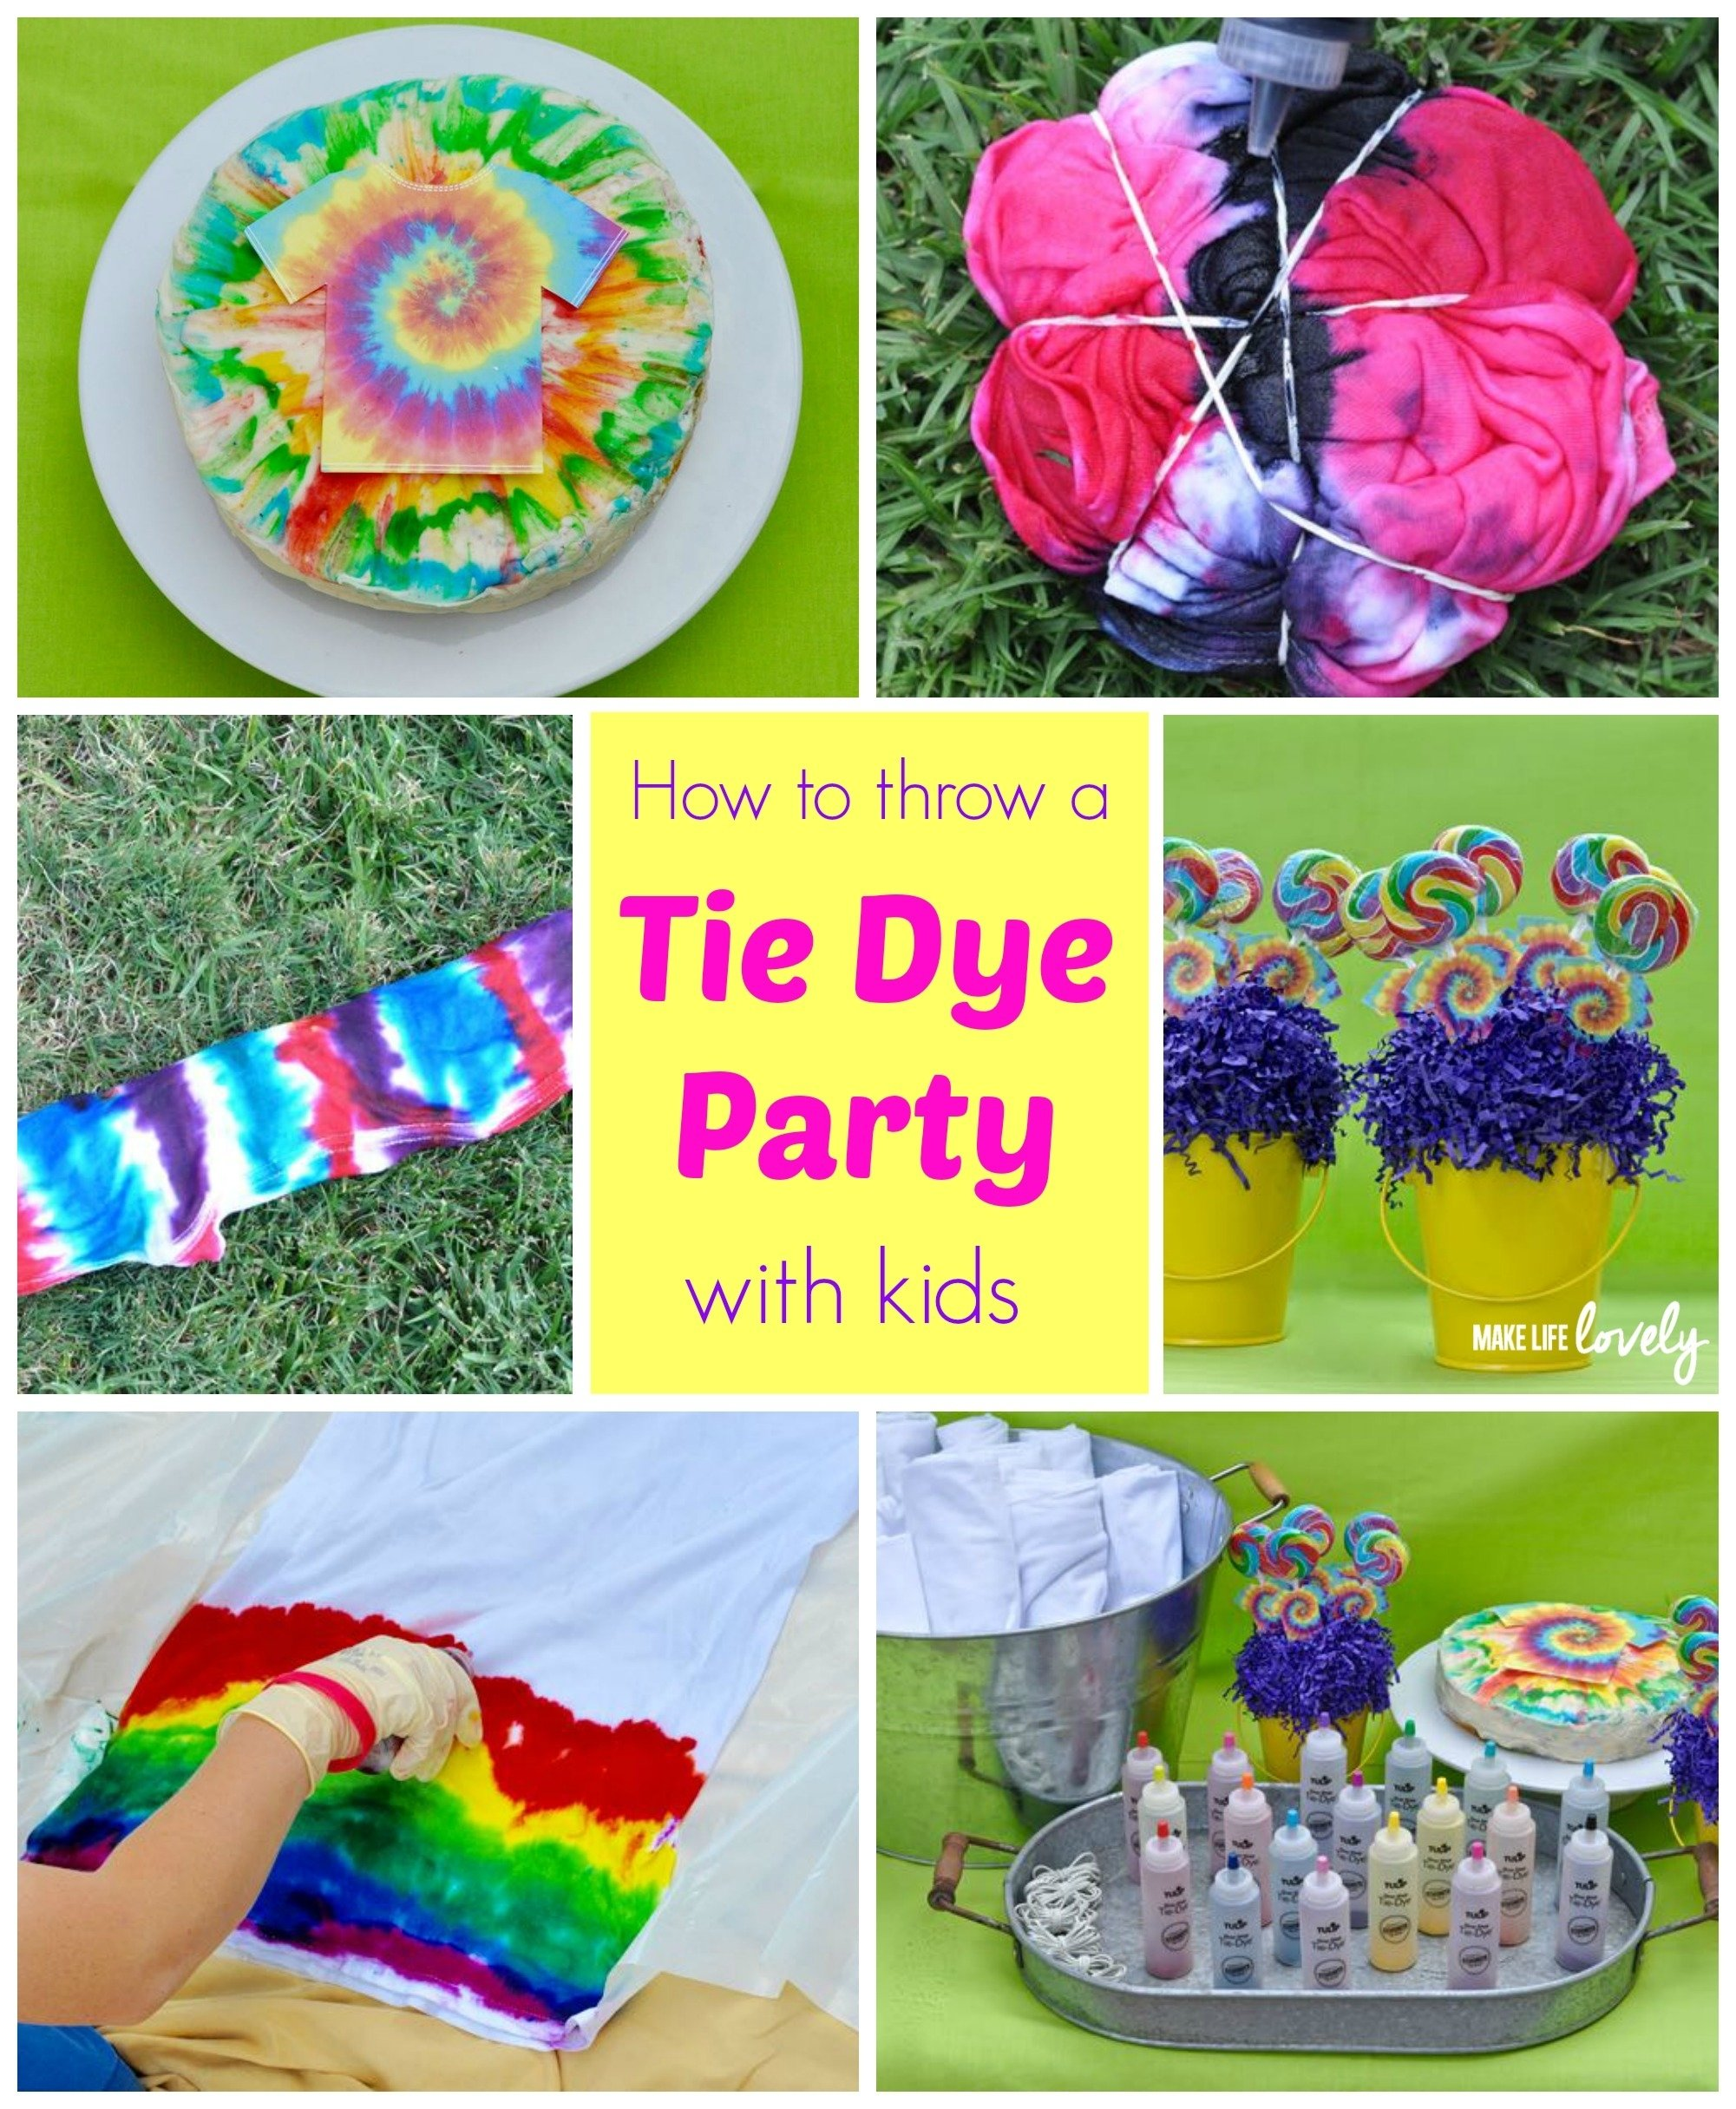 10 Most Recommended Tie Dye Birthday Party Ideas tie dye party make life lovely